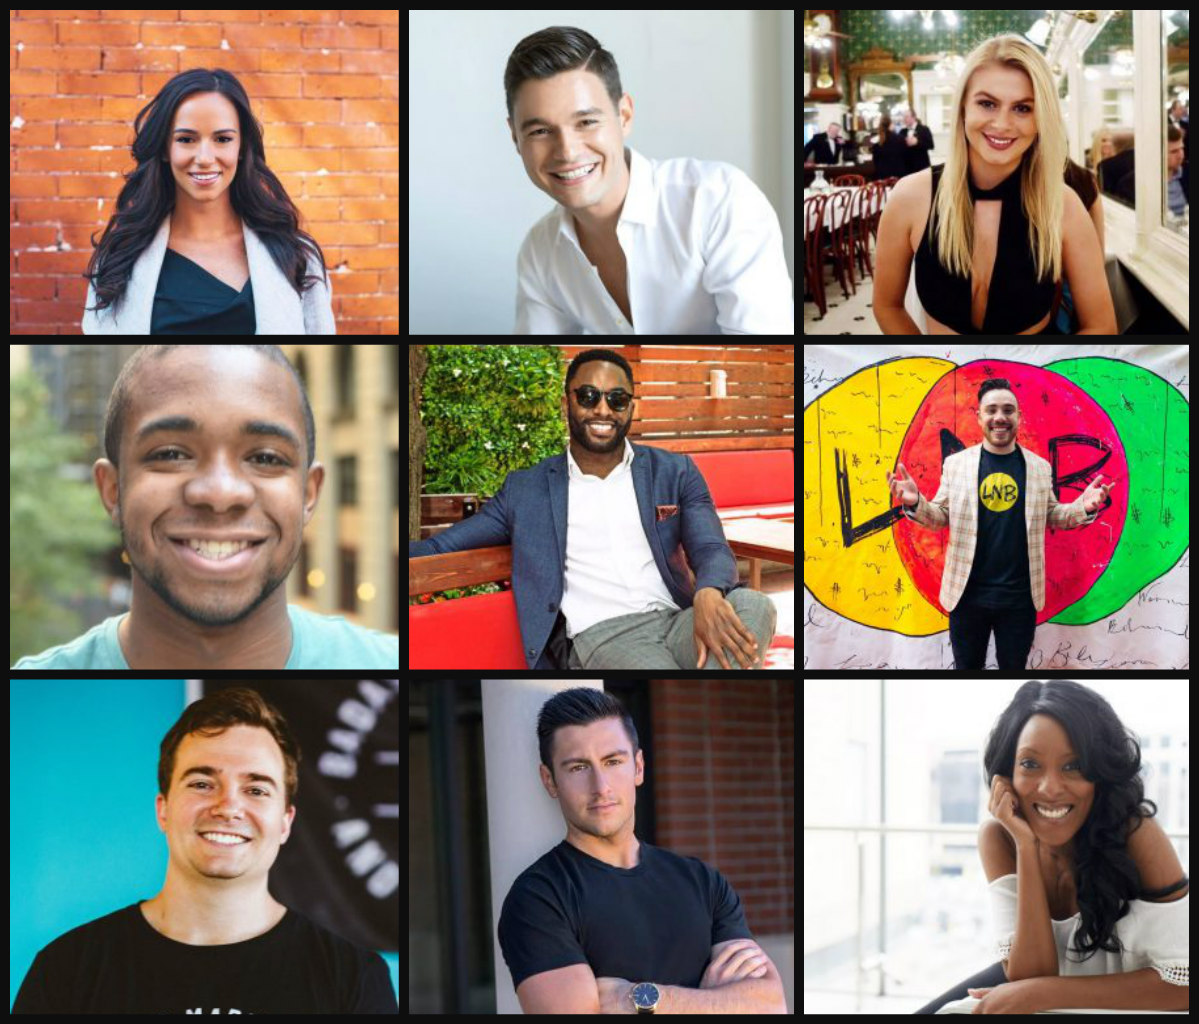 These Are New Theory's Top 40 Millennial Influencers to Watch in 2018